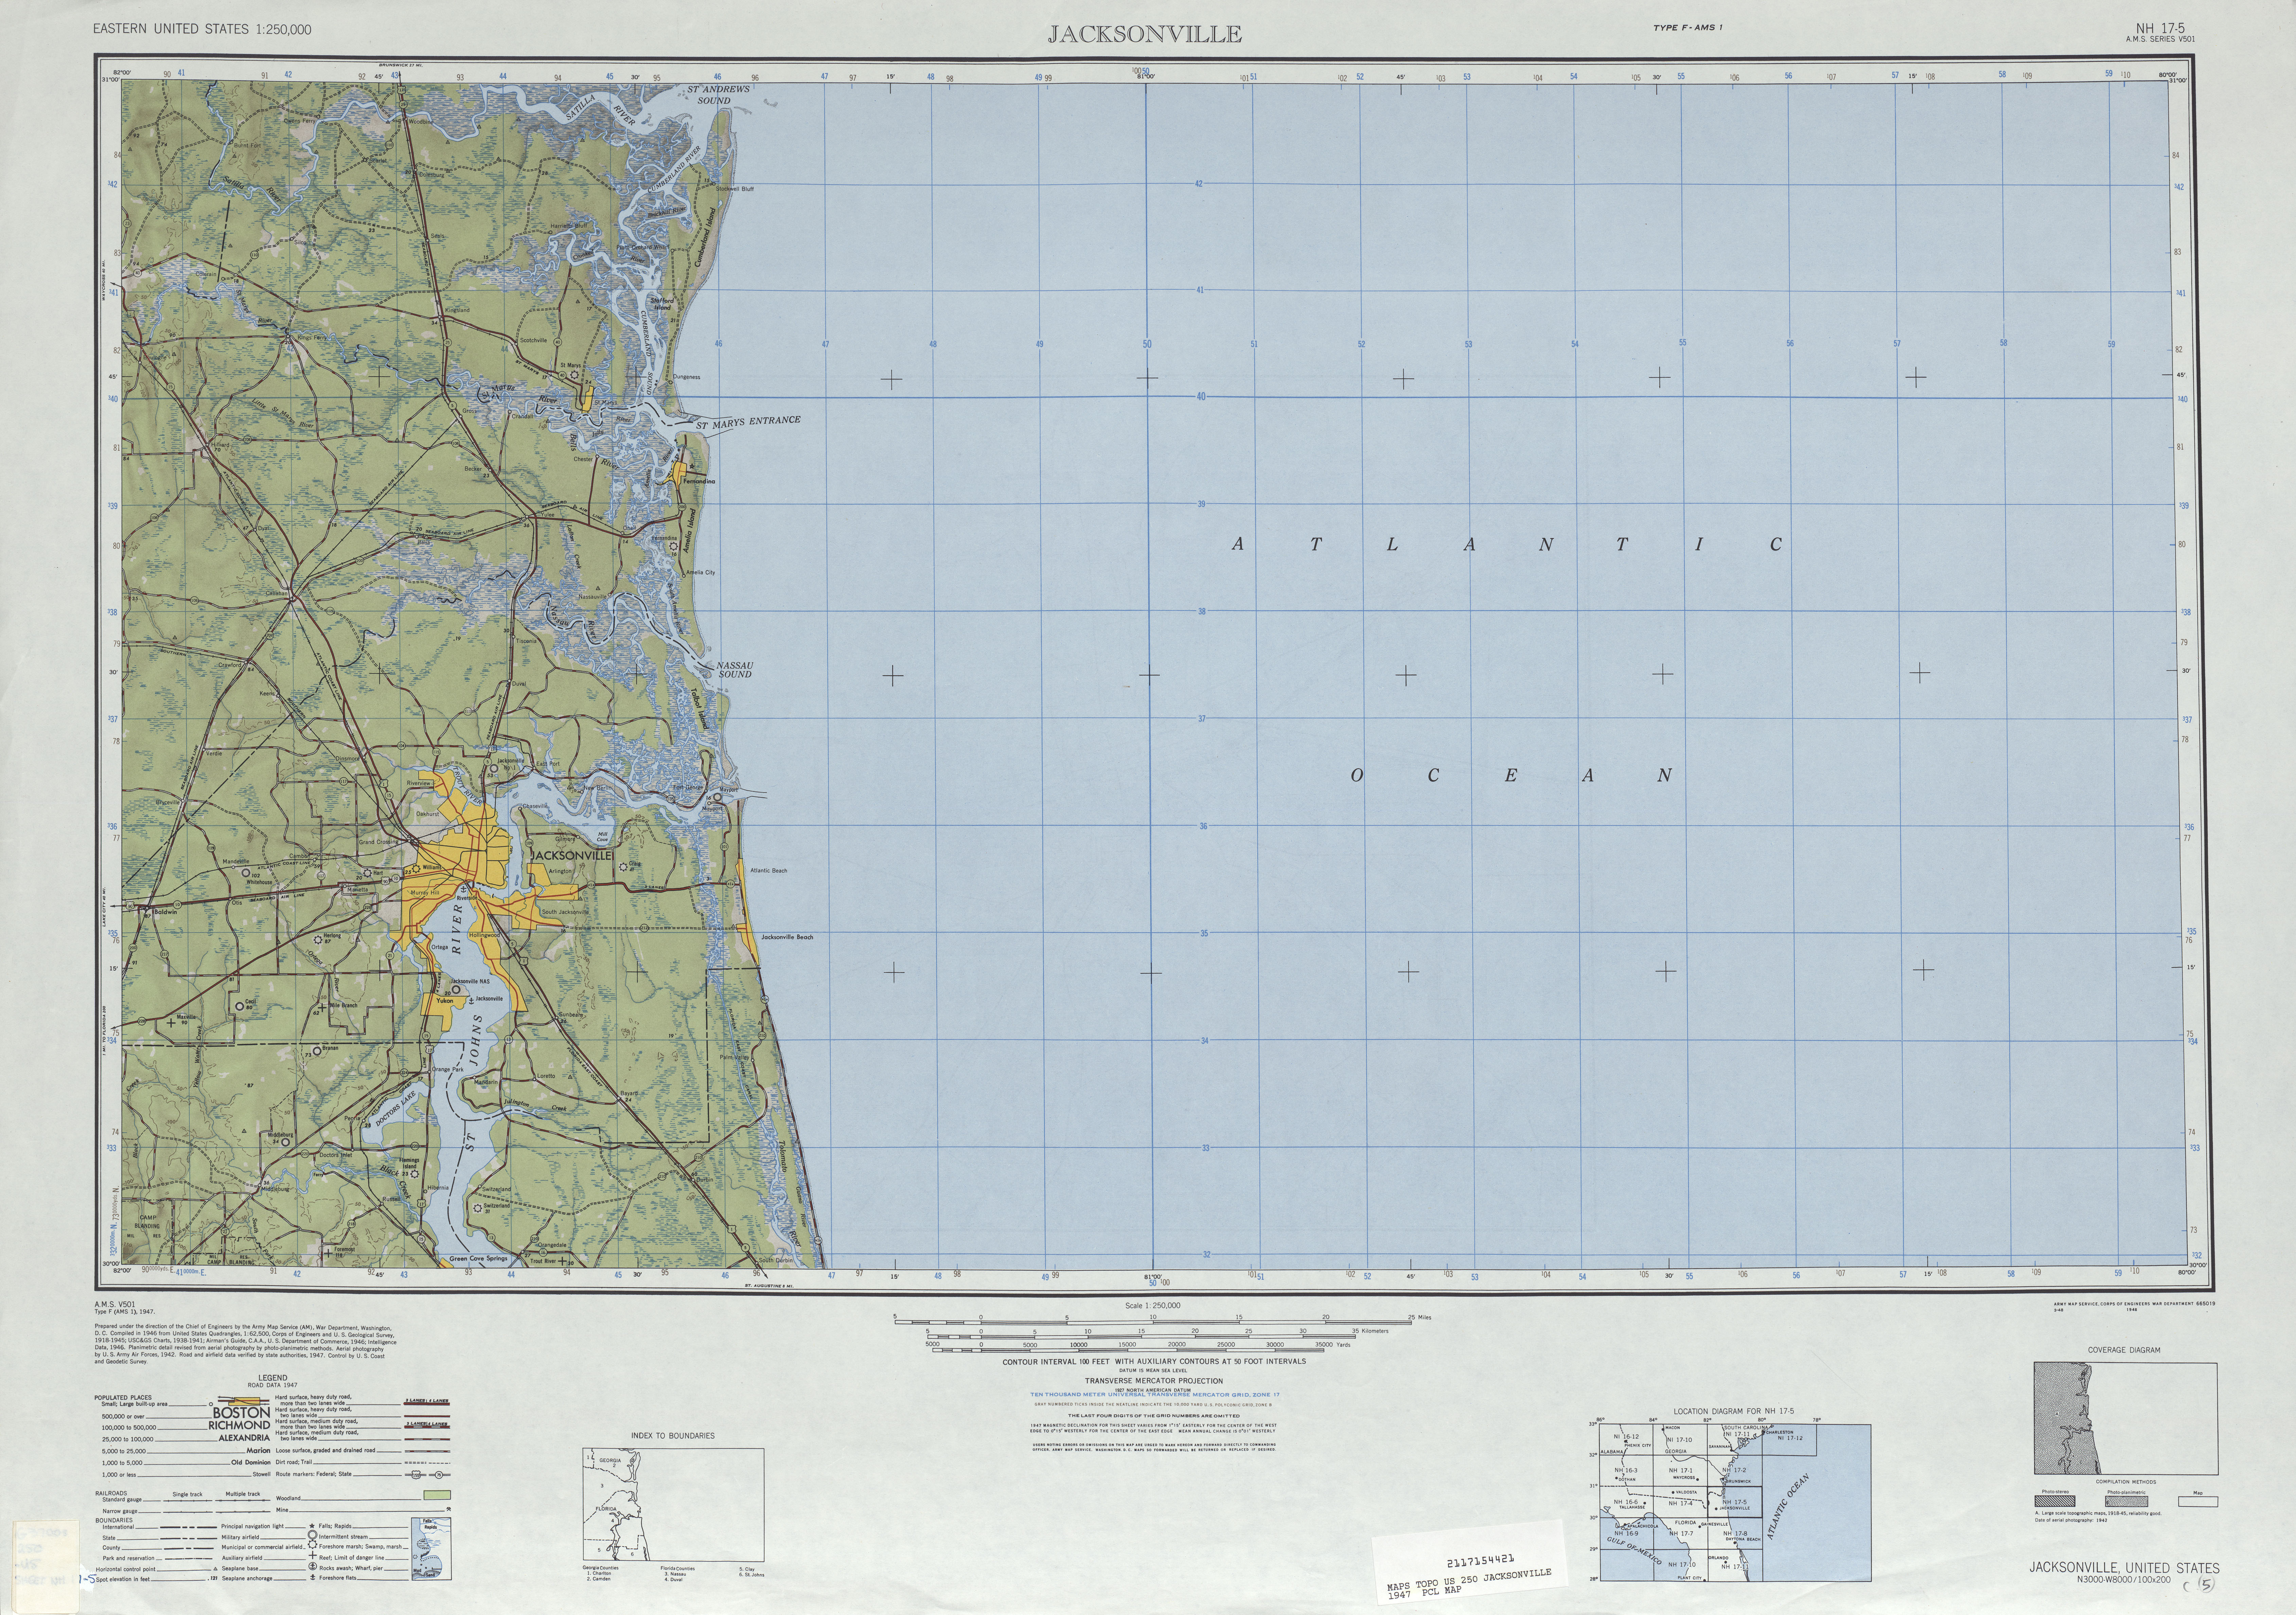 Jacksonville Shaded Relief Map Sheet, United States 1947